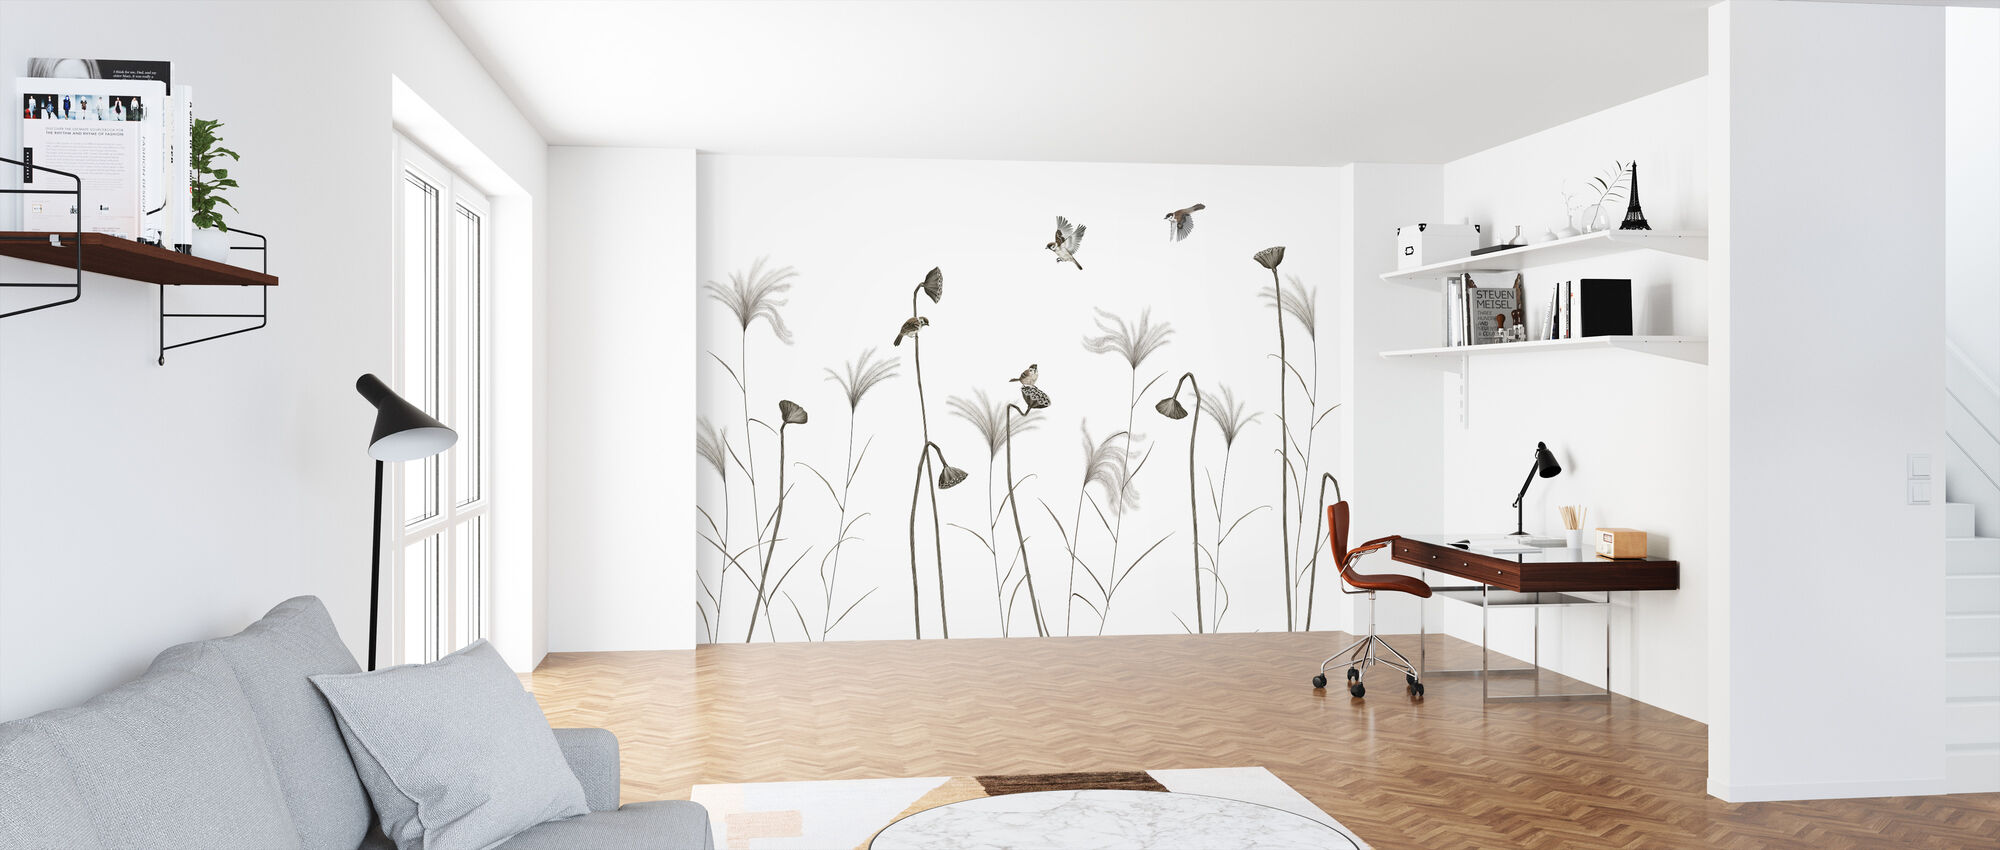 Fly and Jive - Wallpaper - Office